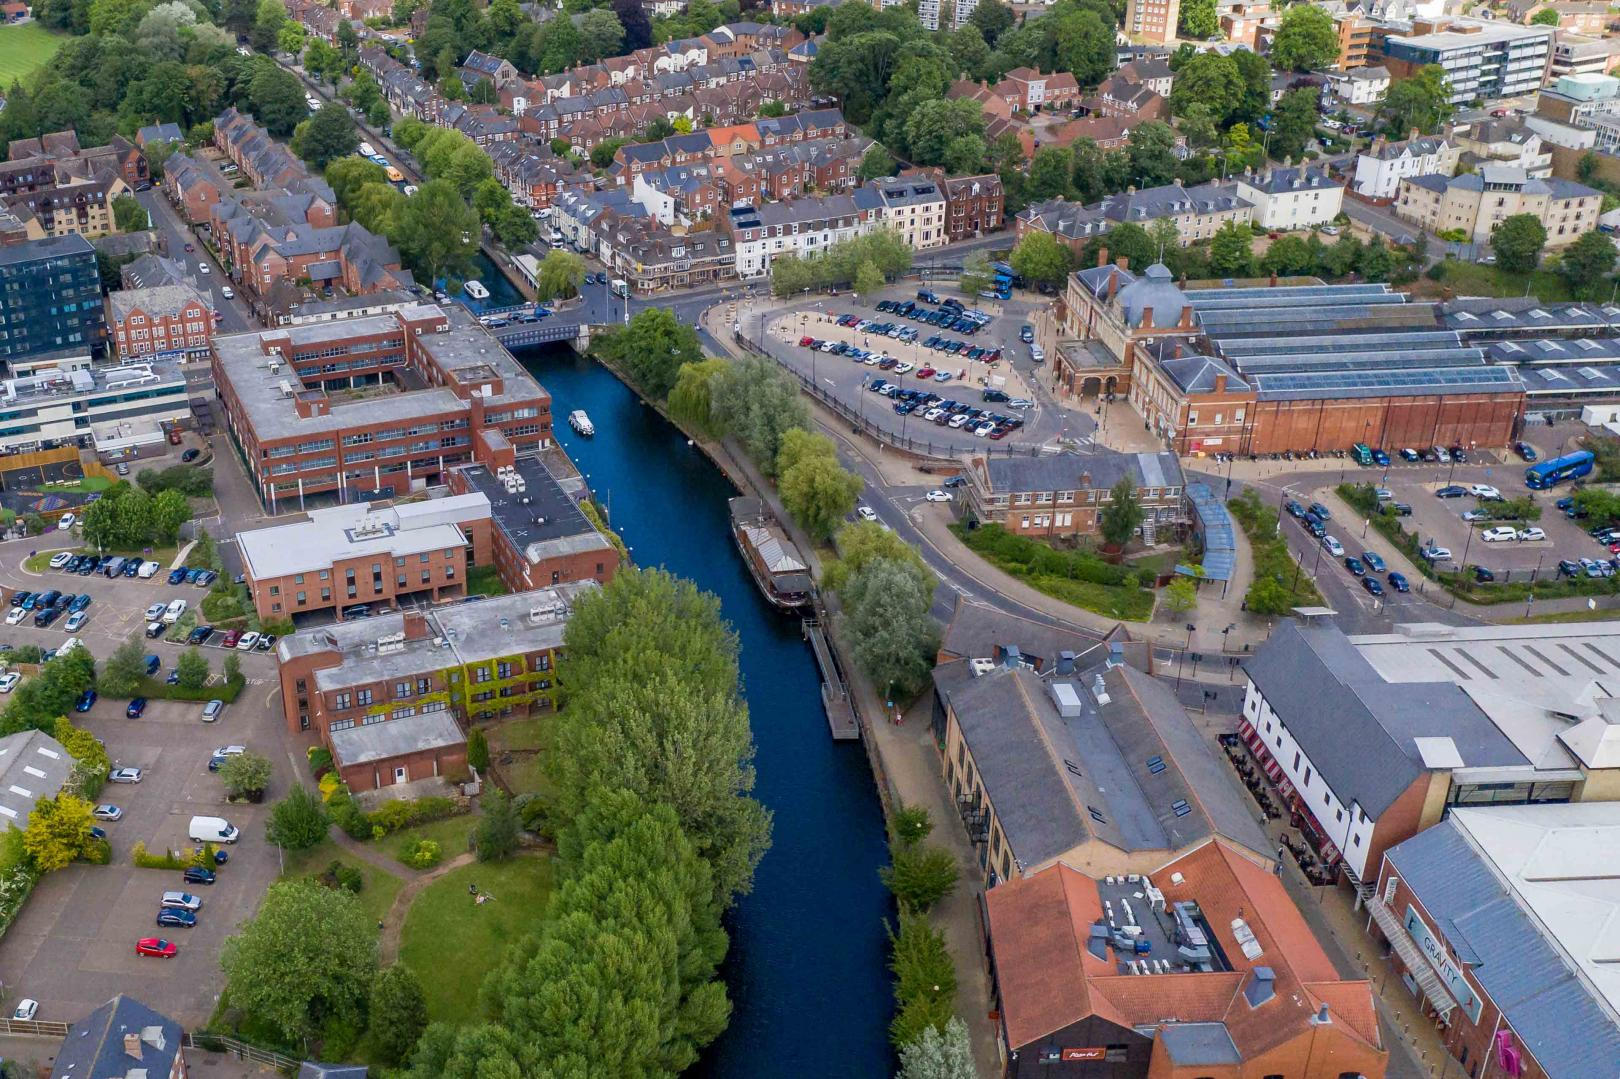 Commercial Drone Services Norwich